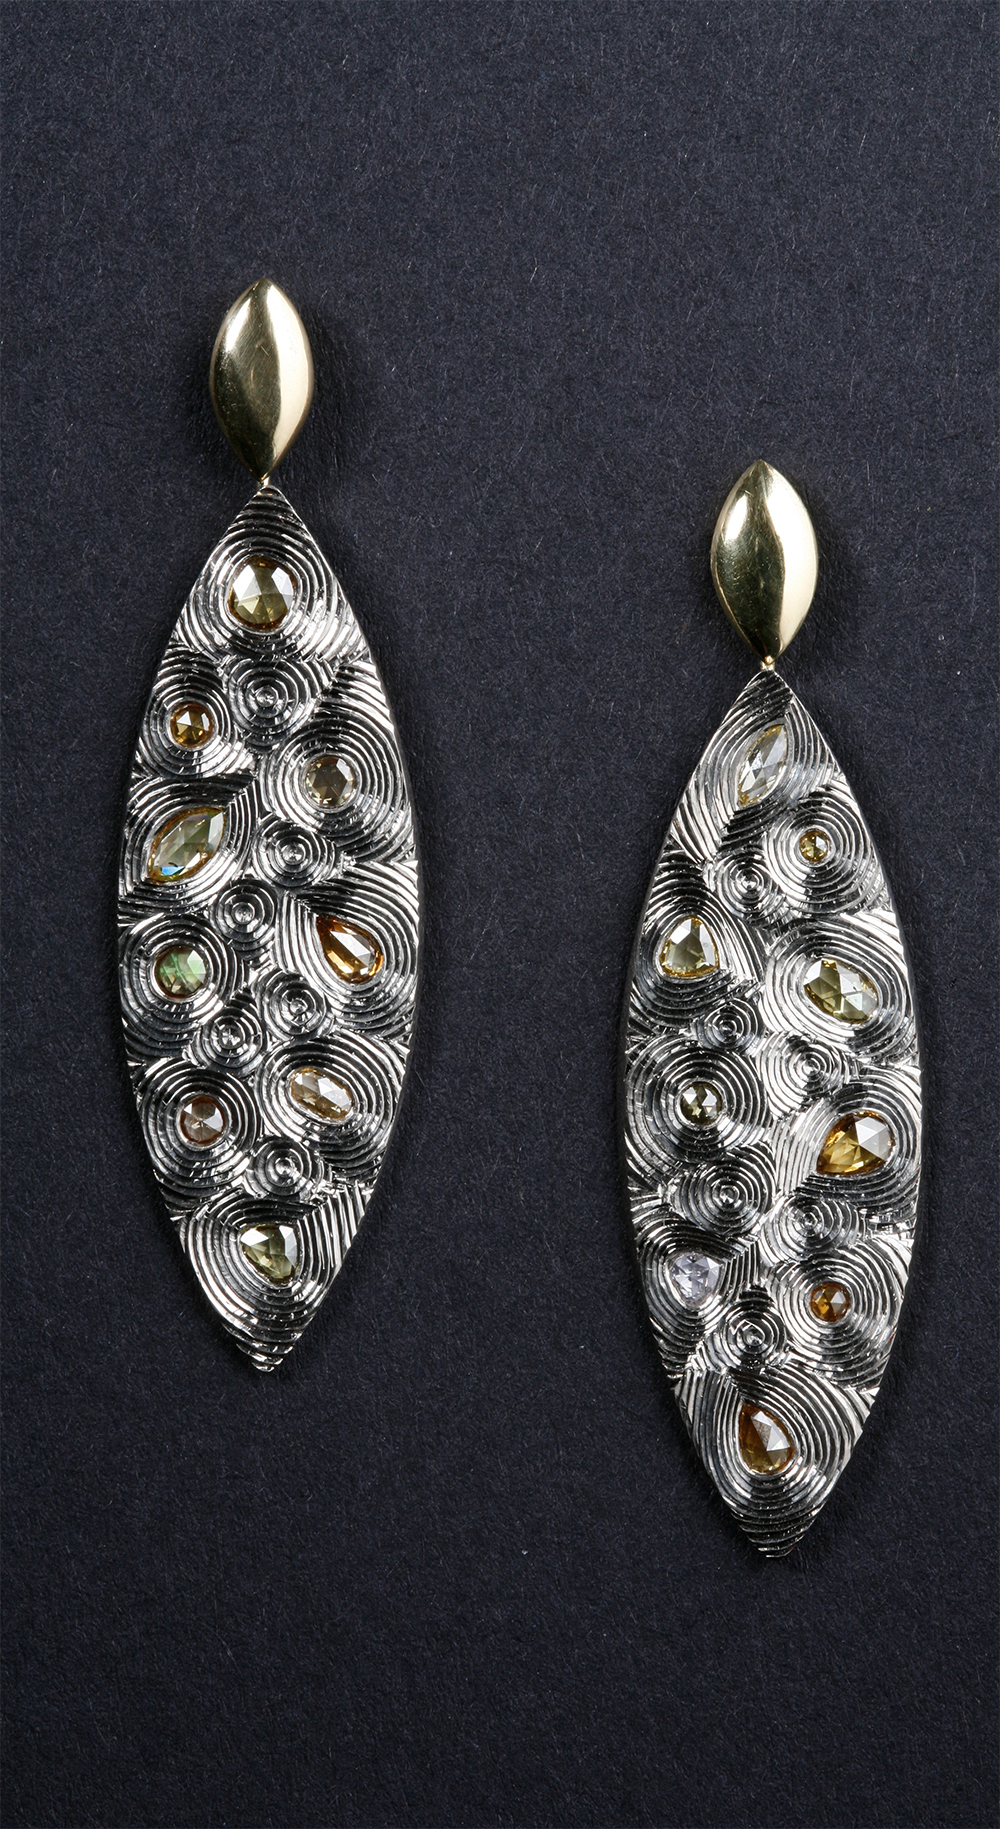 """<a href=""""/jewellery/18ct-yellow-and-white-gold-hand-engraved-white-and-coloured-diamonds-photo-andra-nelki"""">18ct yellow and white gold, hand engraved, white and coloured diamonds. Photo: Andra Nelki</a>"""